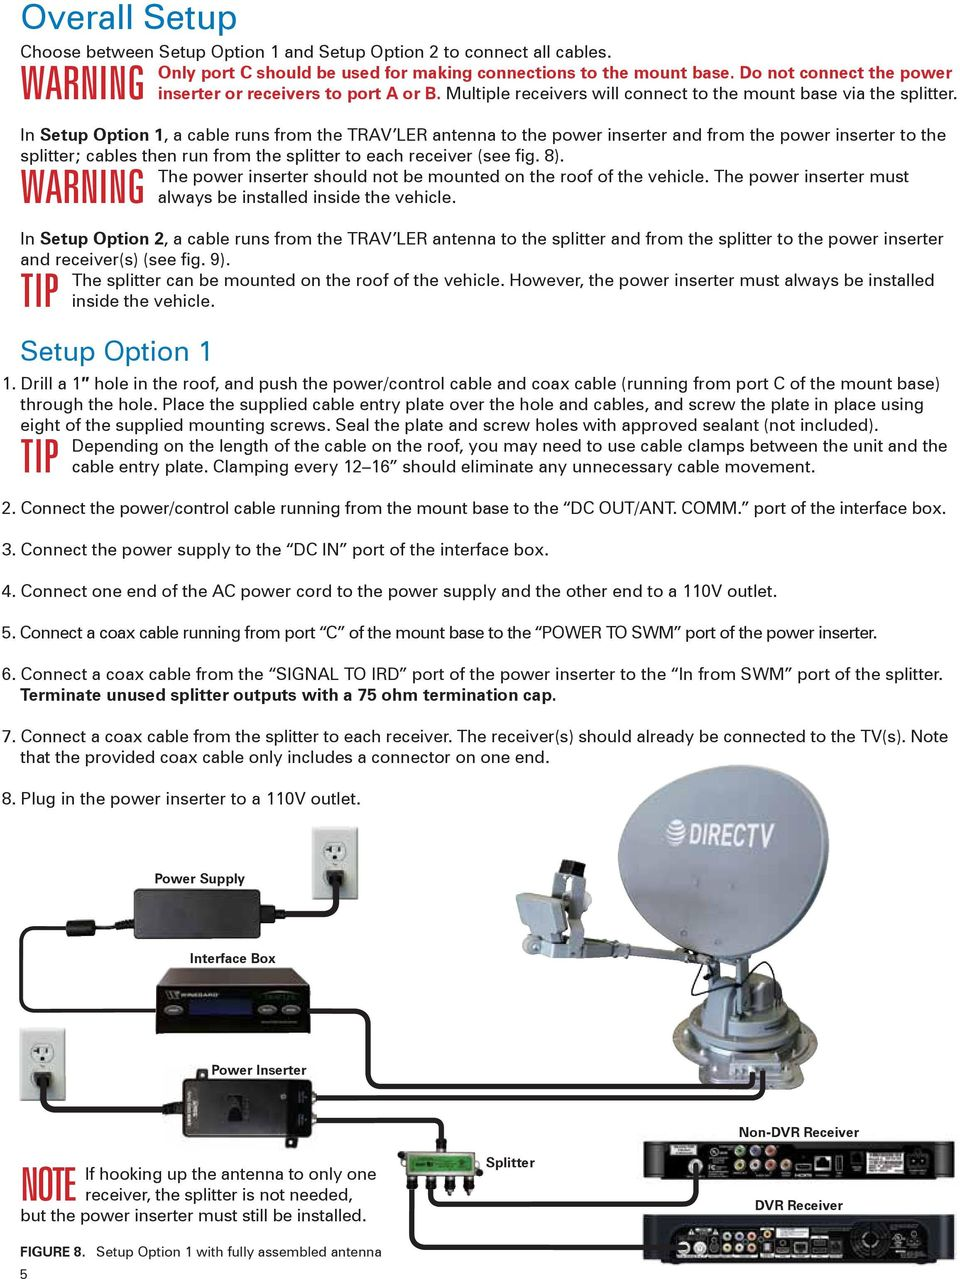 WARNING In Setup Option 1, a cable runs from the TRAV LER antenna to the